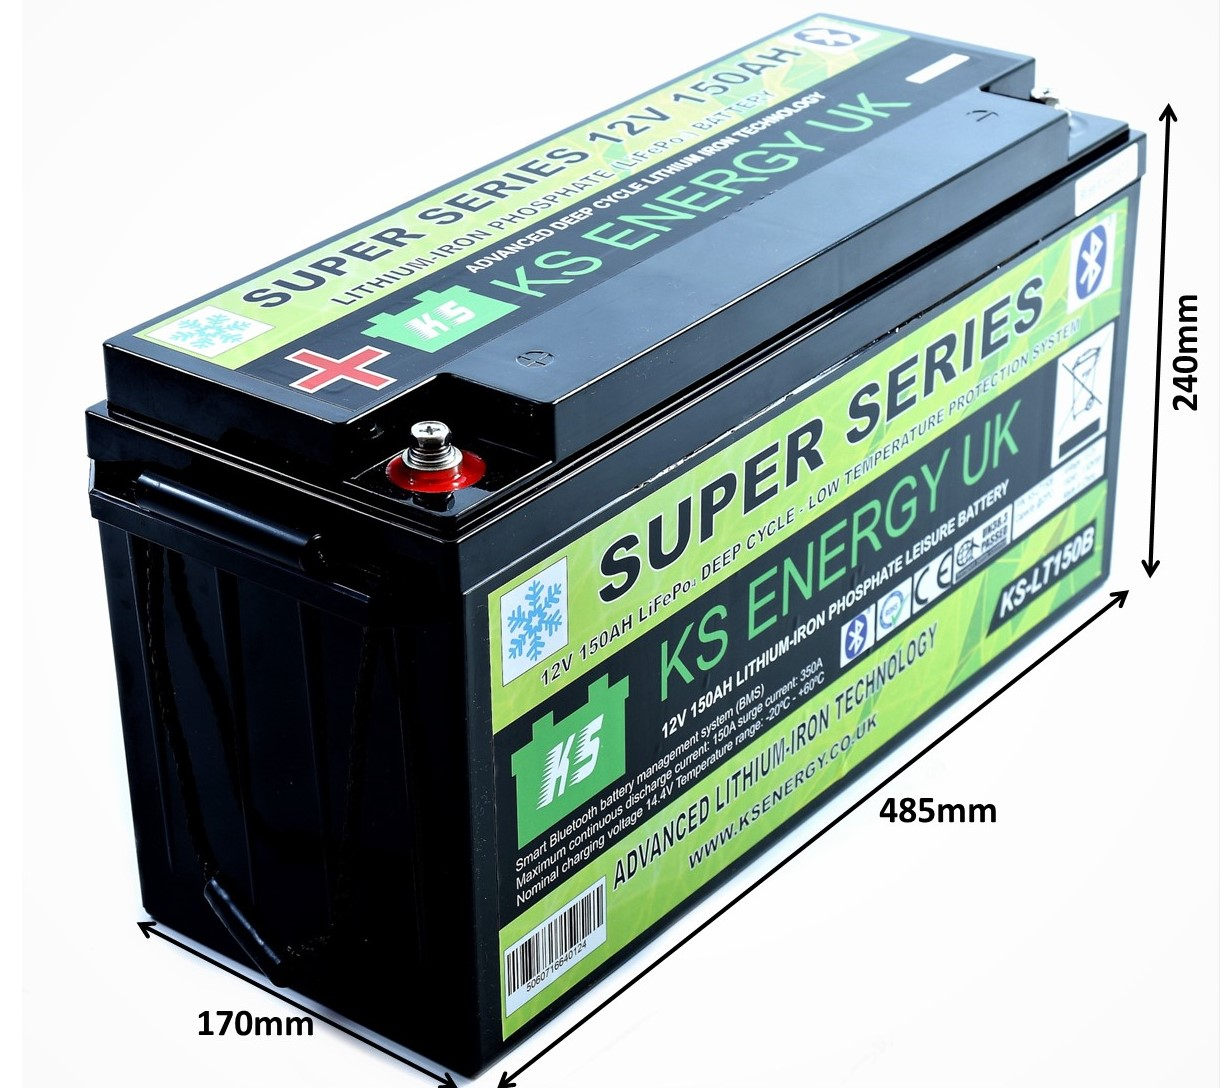 4): KS-LT150B 12v 150AH Bluetooth High Power LiFePo4 lithium leisure battery